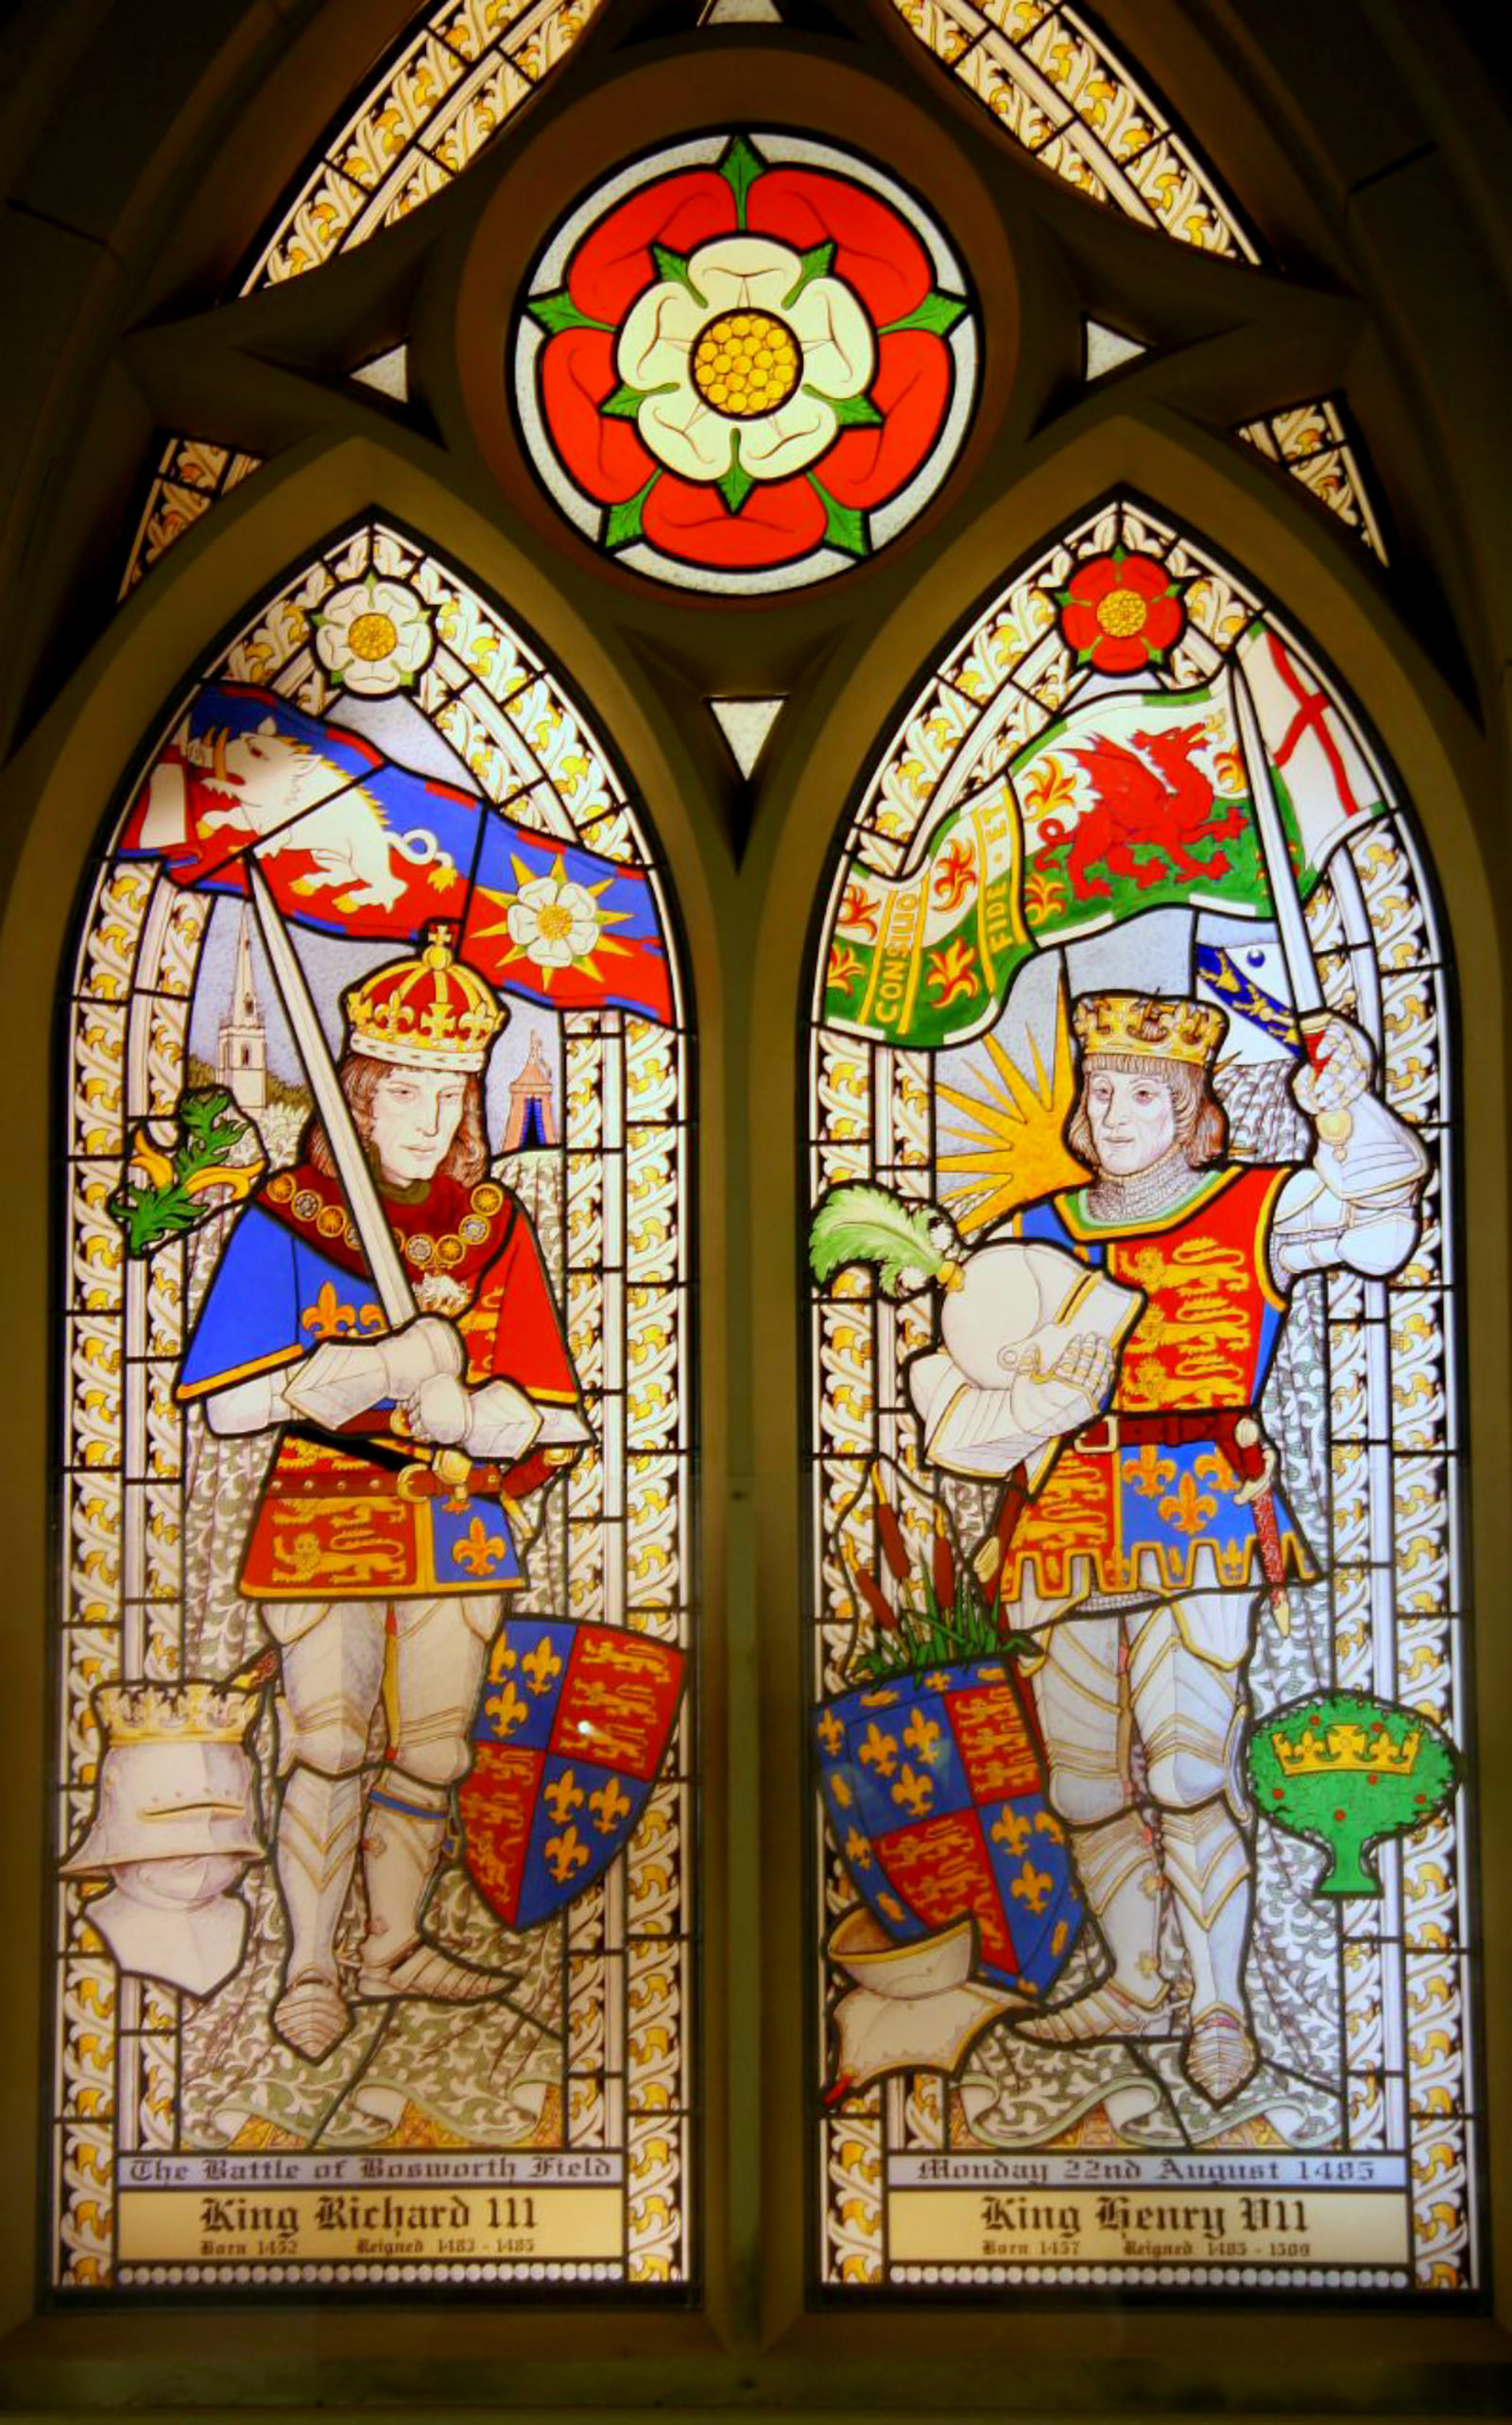 A stained glass window depicting Richard III and Henry VII in St. James Church